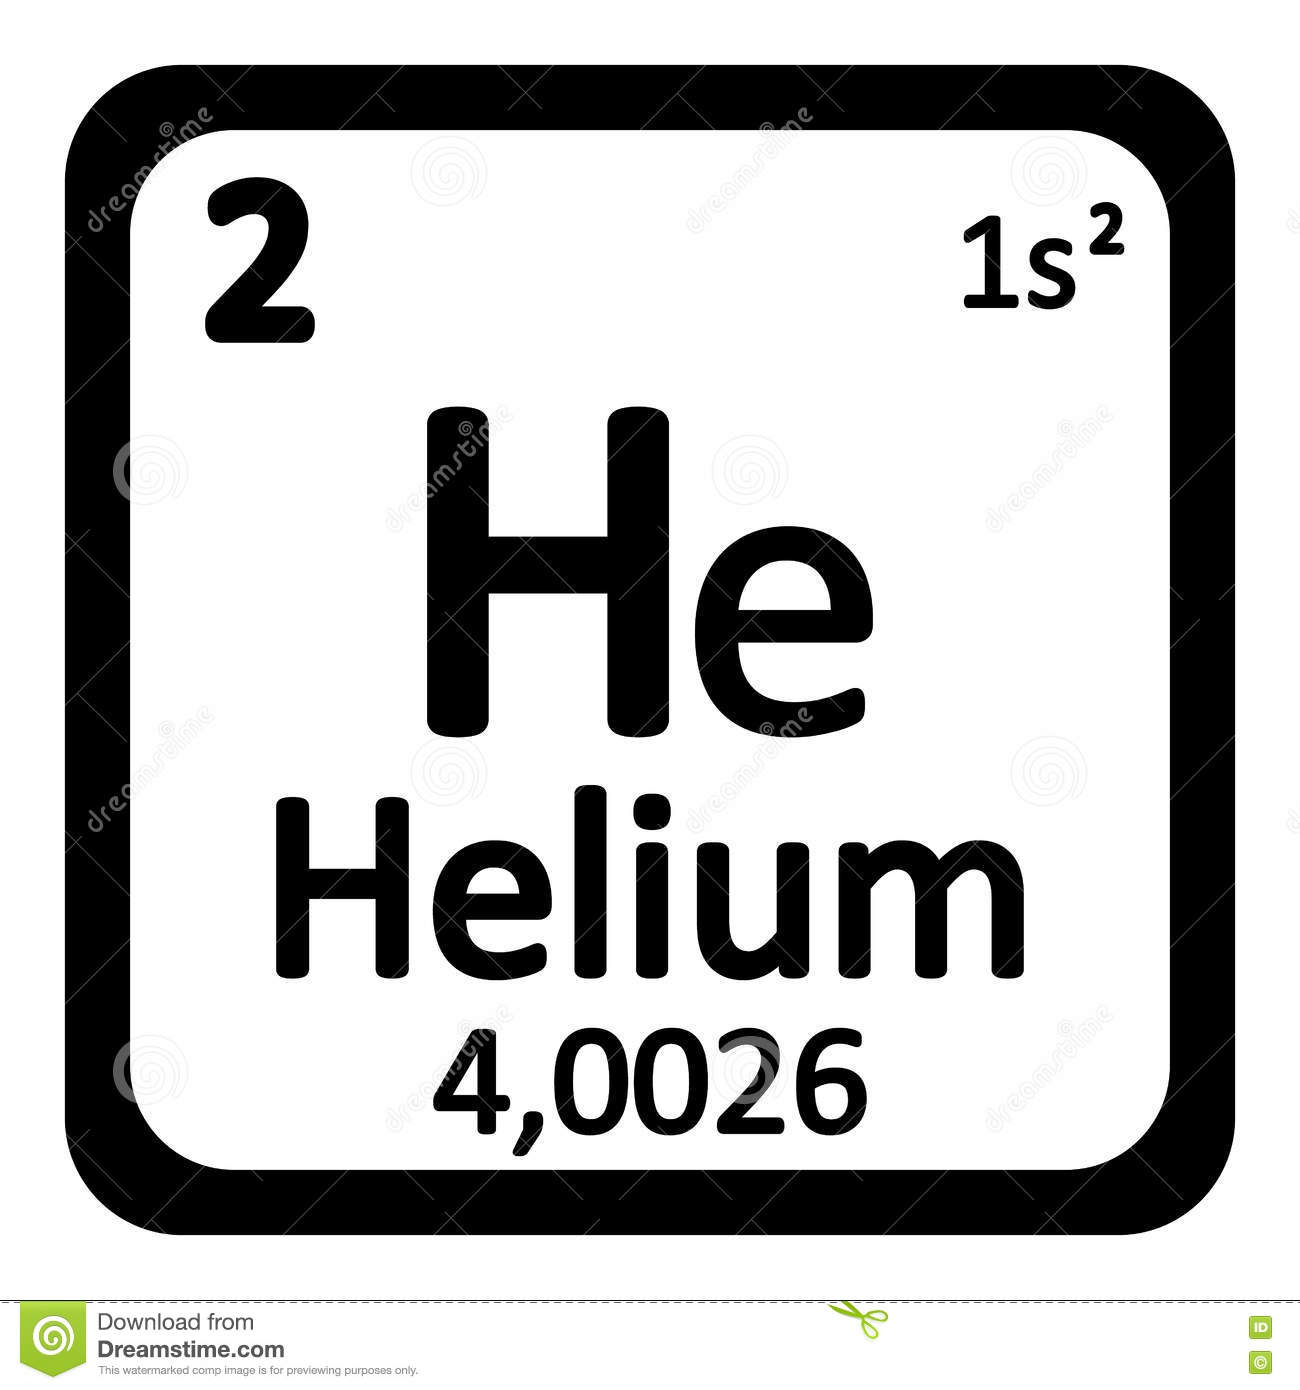 Periodic table element helium icon stock illustration periodic table element helium icon buycottarizona